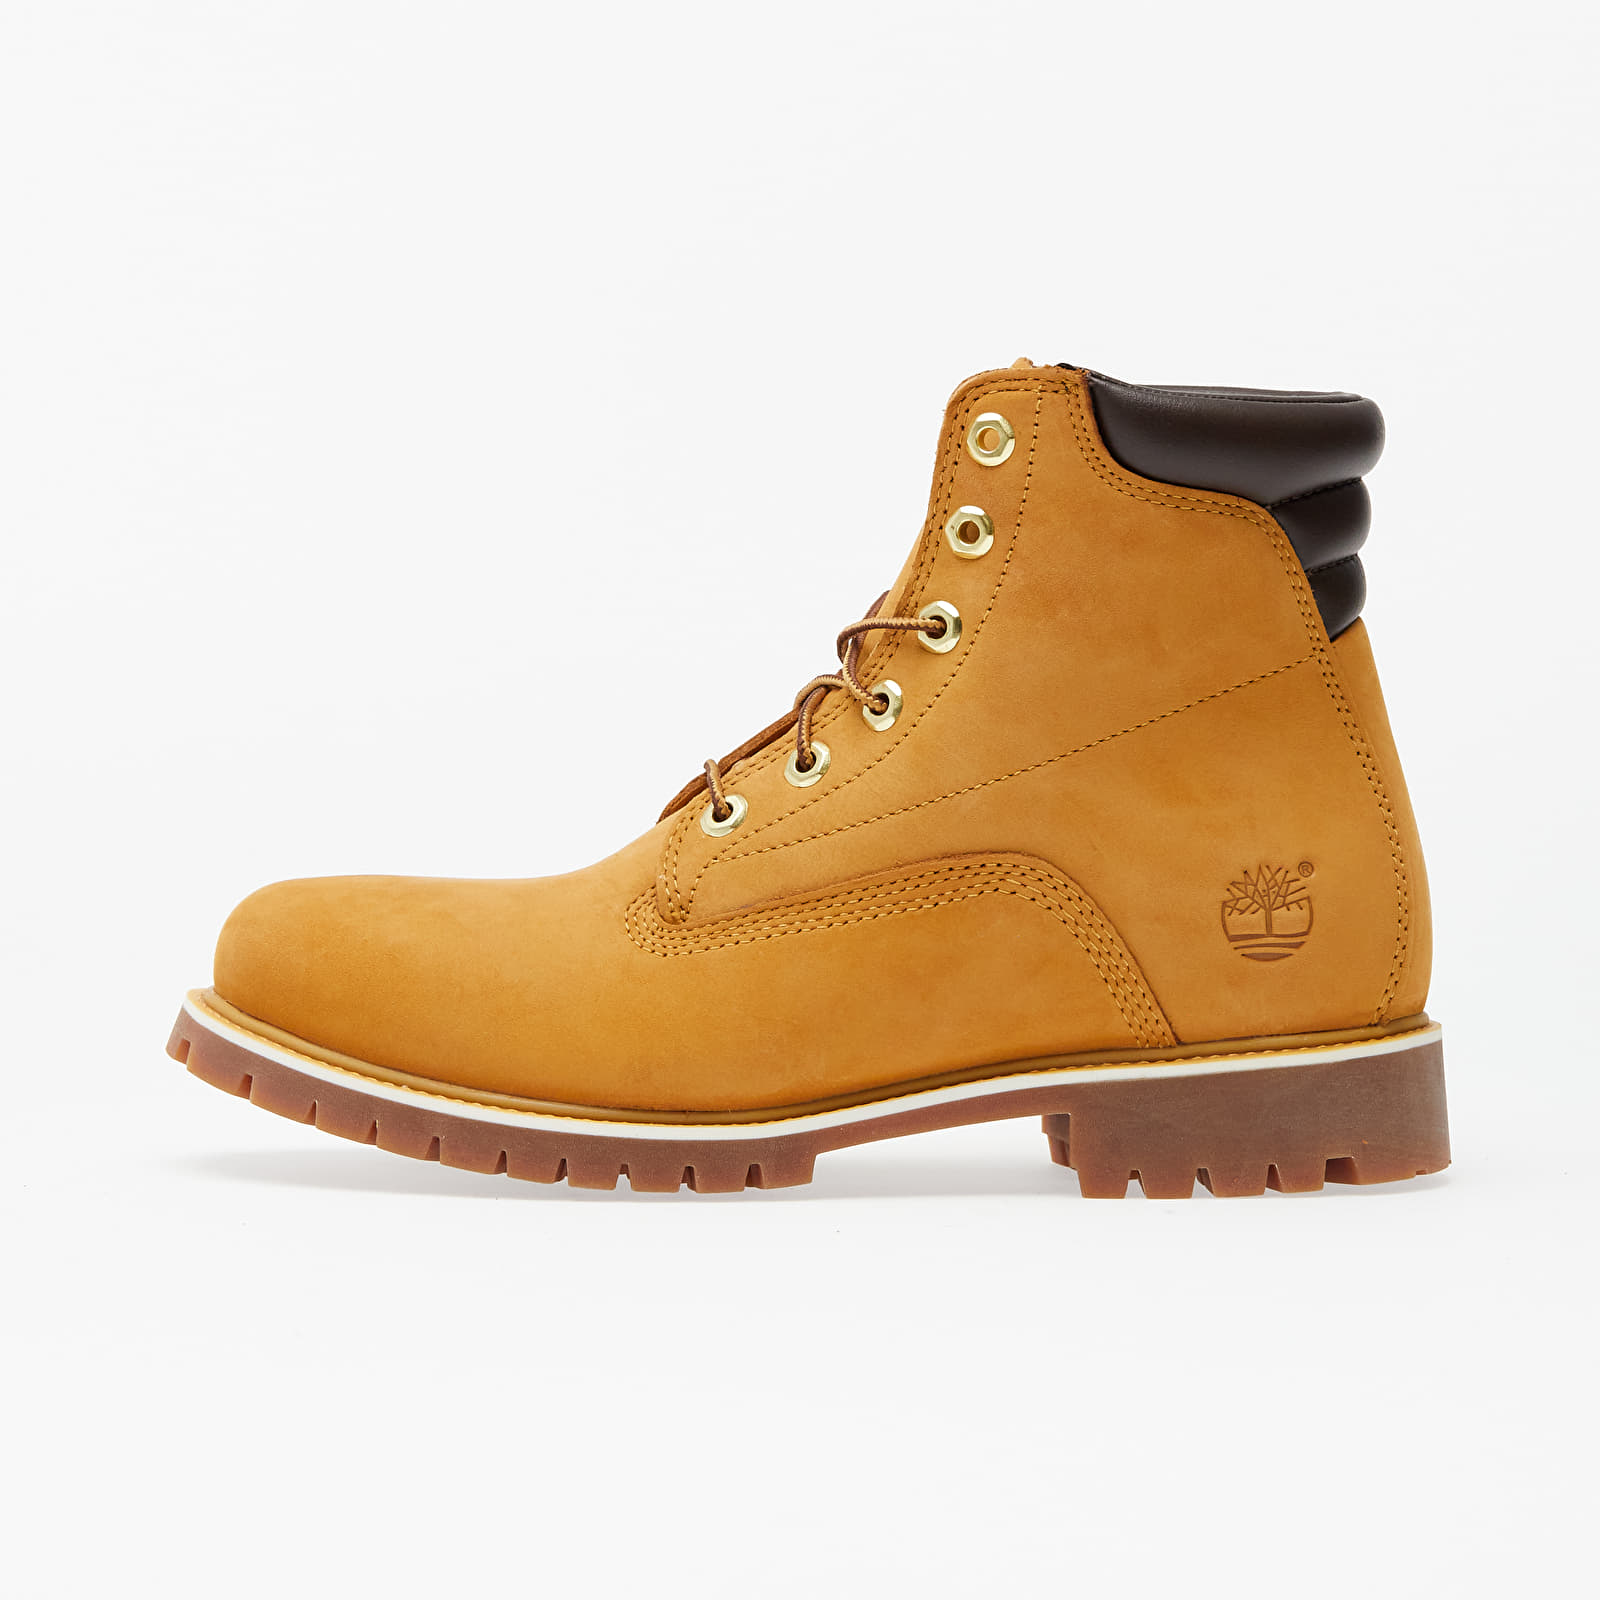 Chaussures et baskets homme Timberland Alburn 6In Waterproof Boot Wheat Nubuck